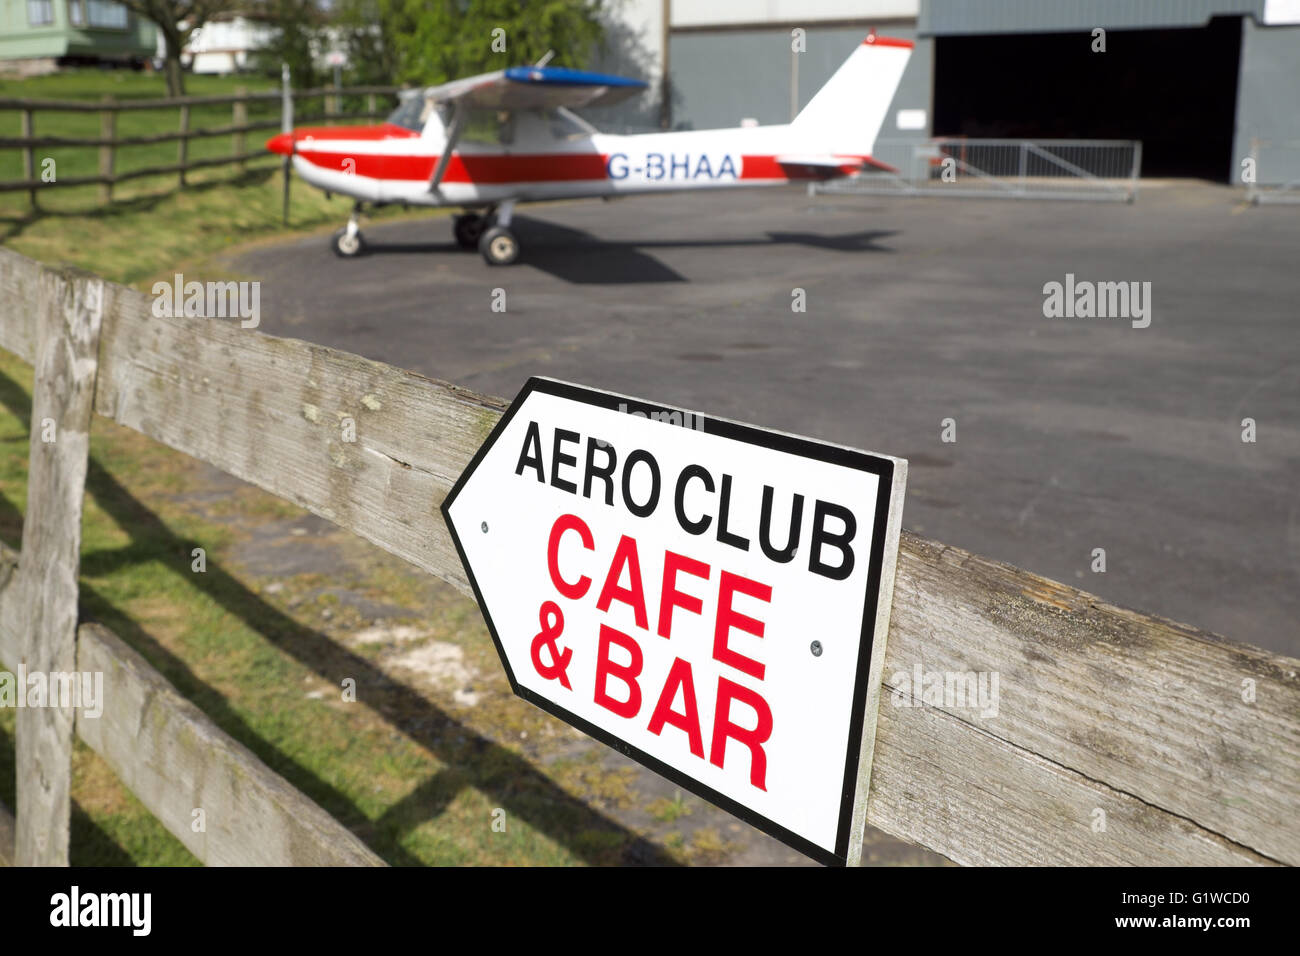 Shobdon airfield Herefordshire sign to Aero Club cafe and bar with a Cessna 152 aircraft - Stock Image